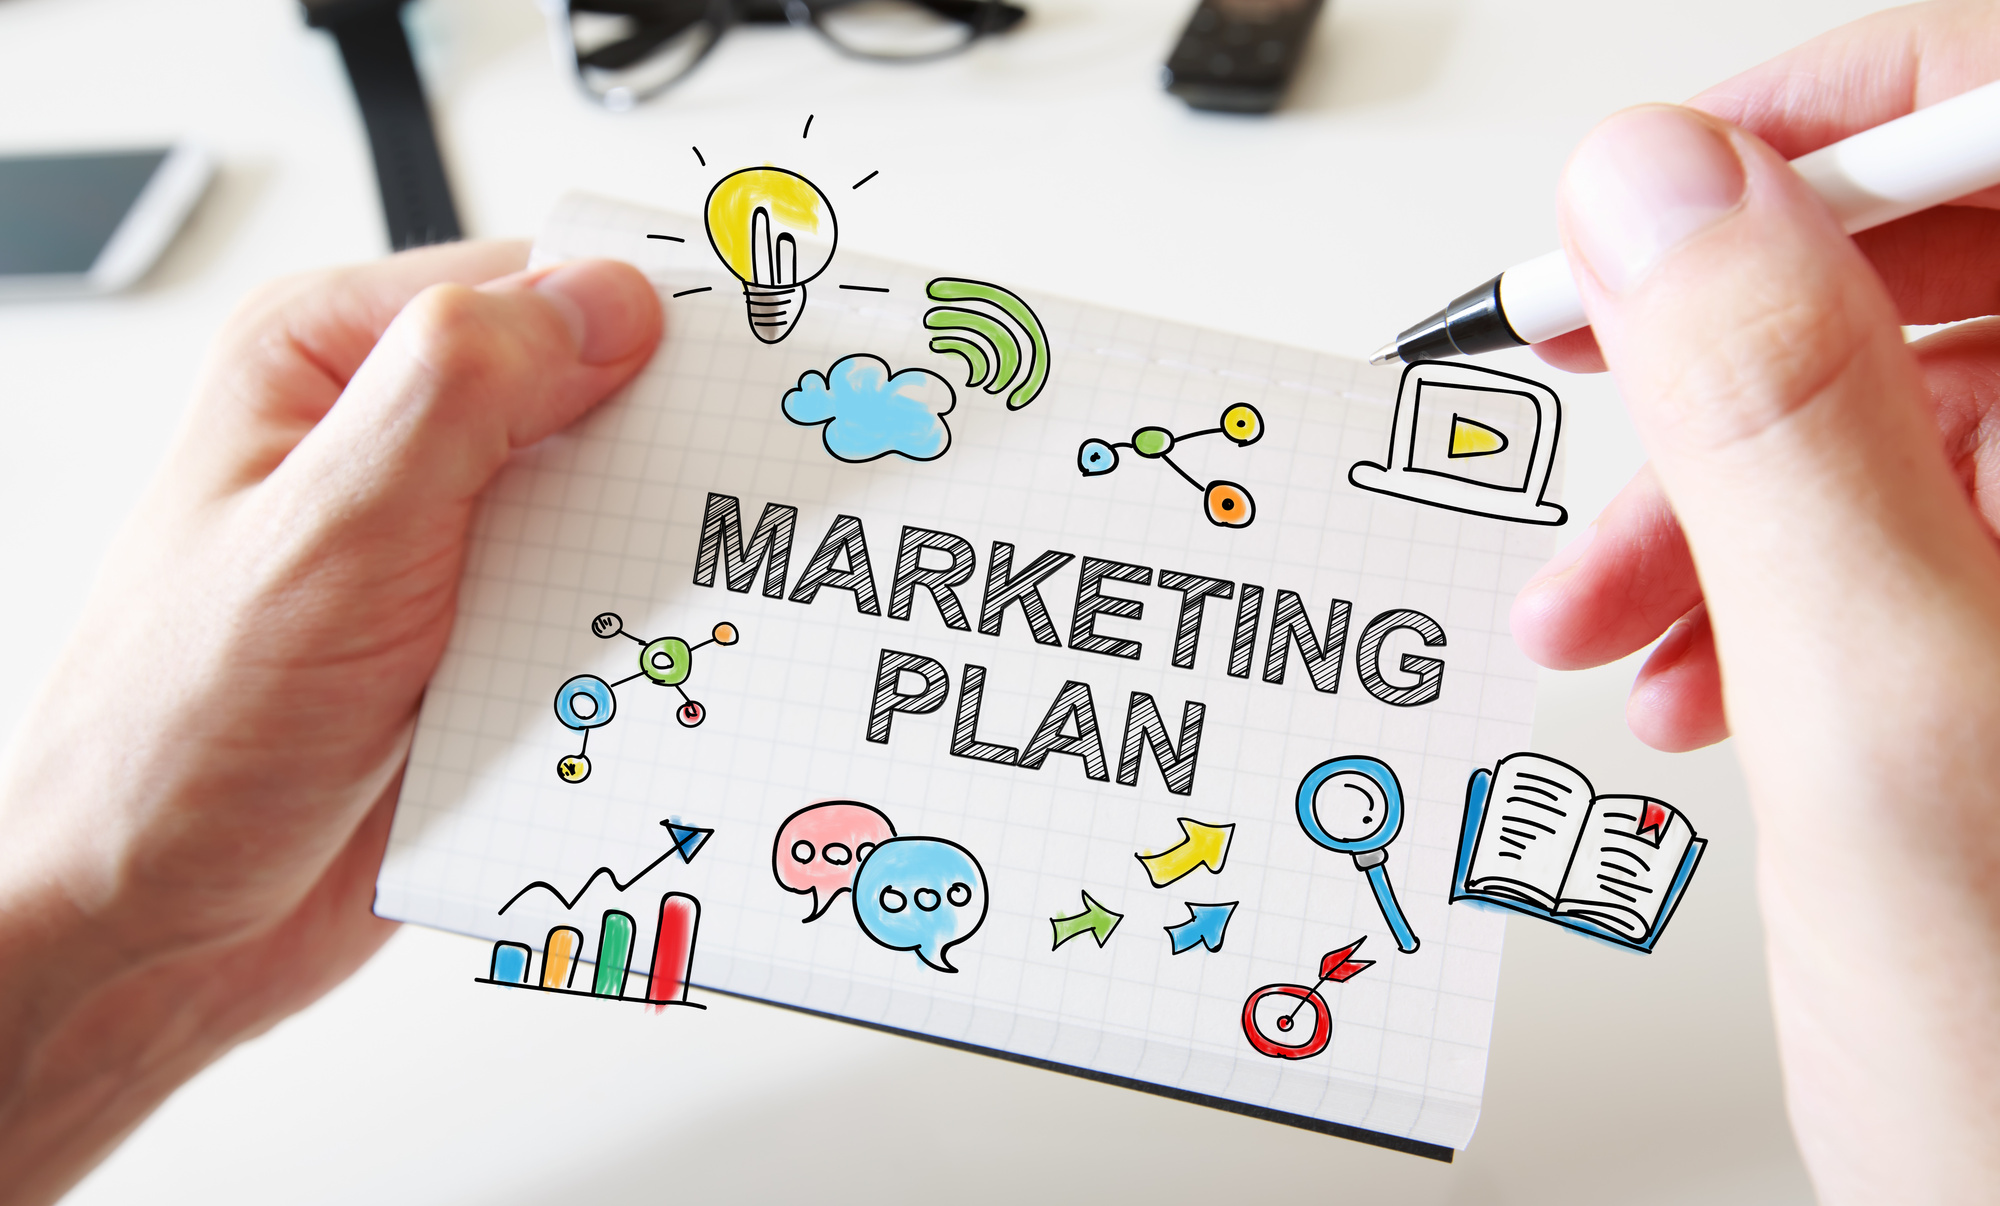 Mans hand drawing Marketing Plan concept on notebook